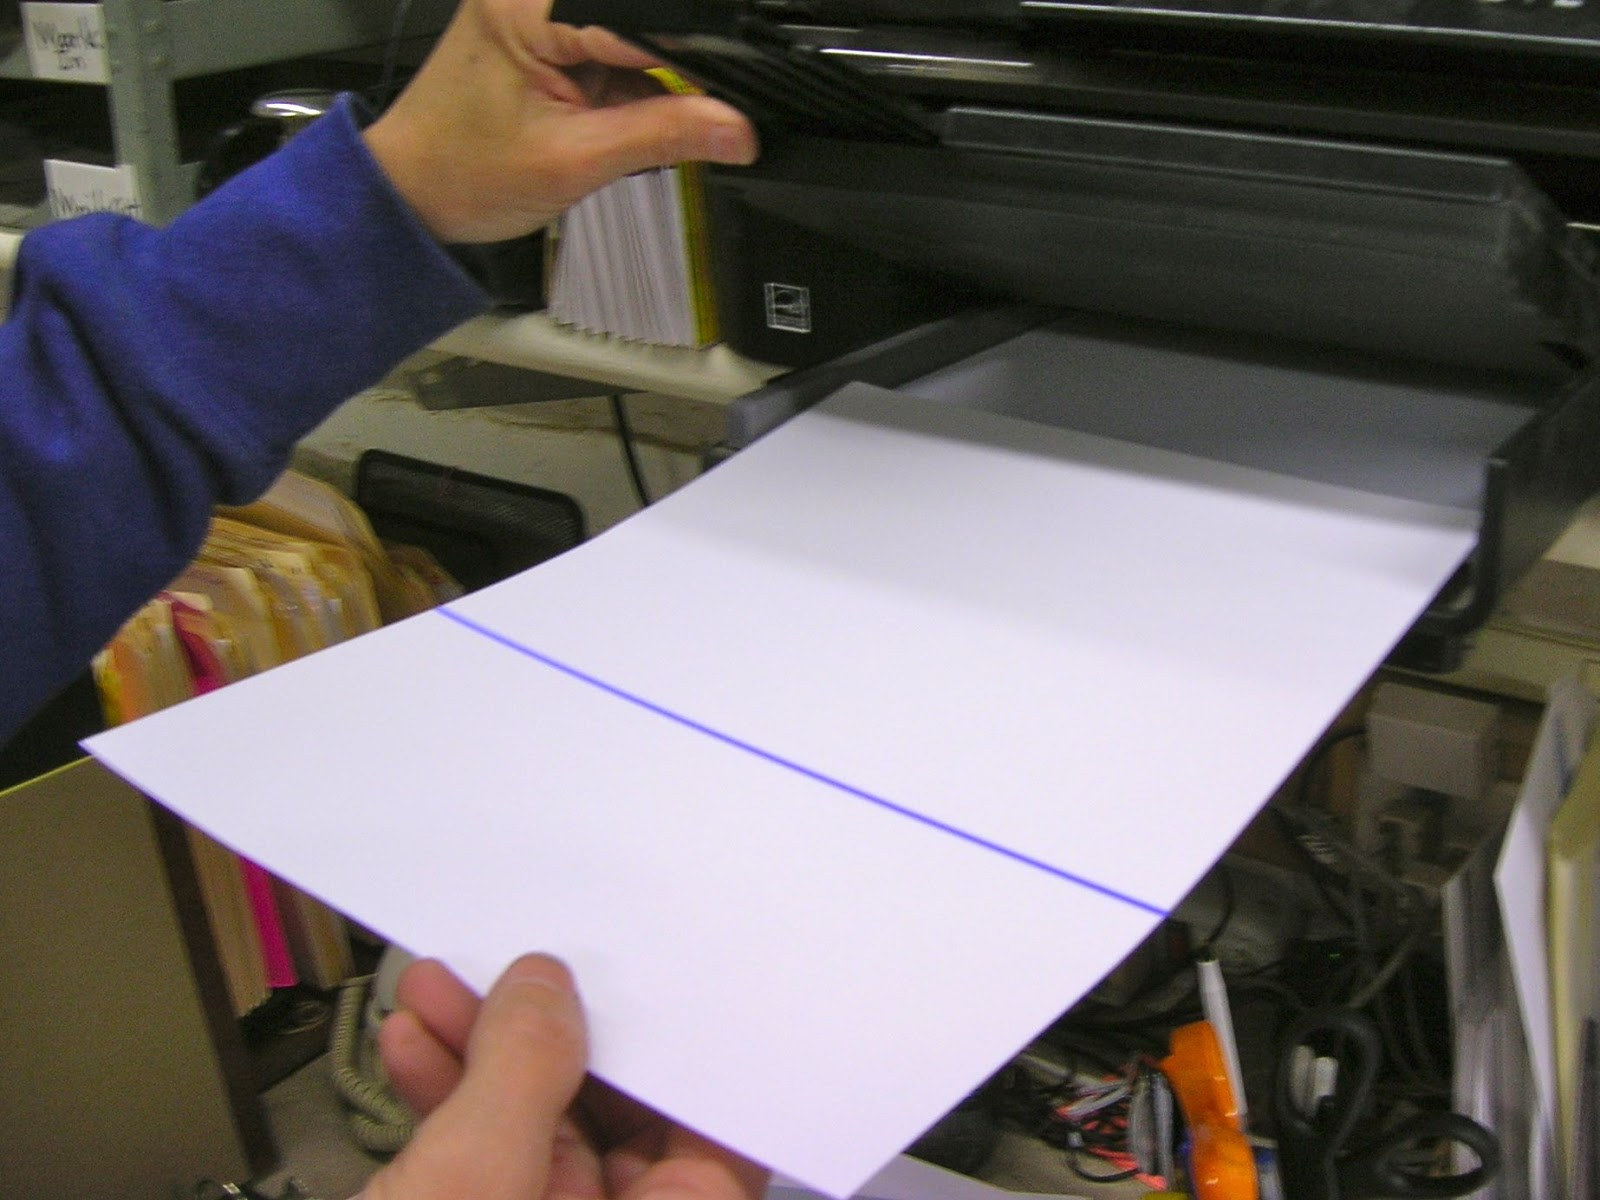 Handle Your Brew!: Printing (Test, then Print)